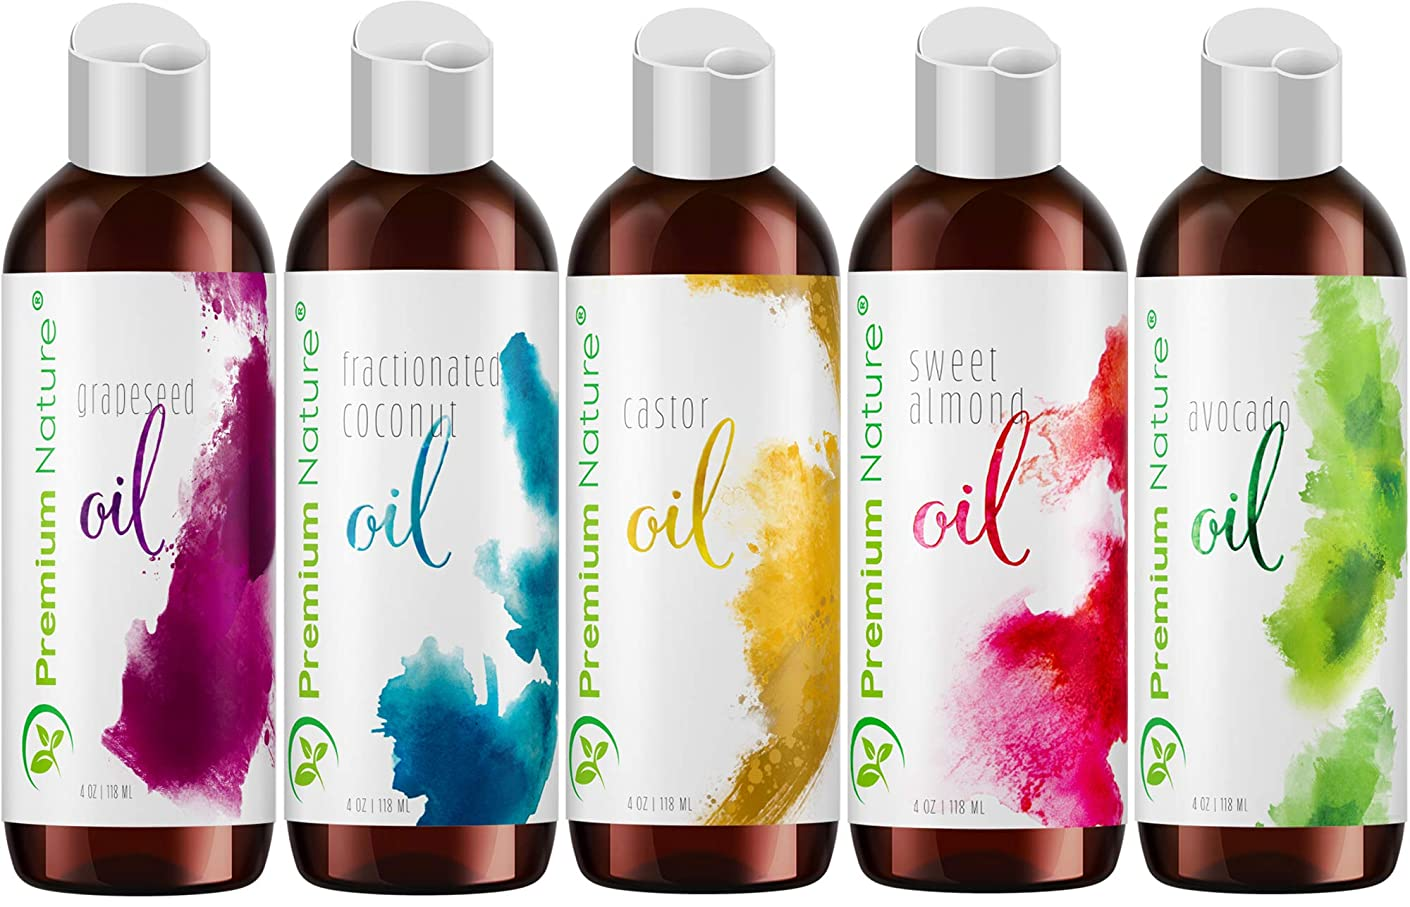 Carrier Oils For Essential Oil - 5 Piece Variety Pack Gifts Sets Coconut Oil Castor Oil Grapeseed Oil Avocado Oil & Sweet Almond Best Oils for Stretch Mark Dry Skin Body Massage Packaging May Vary